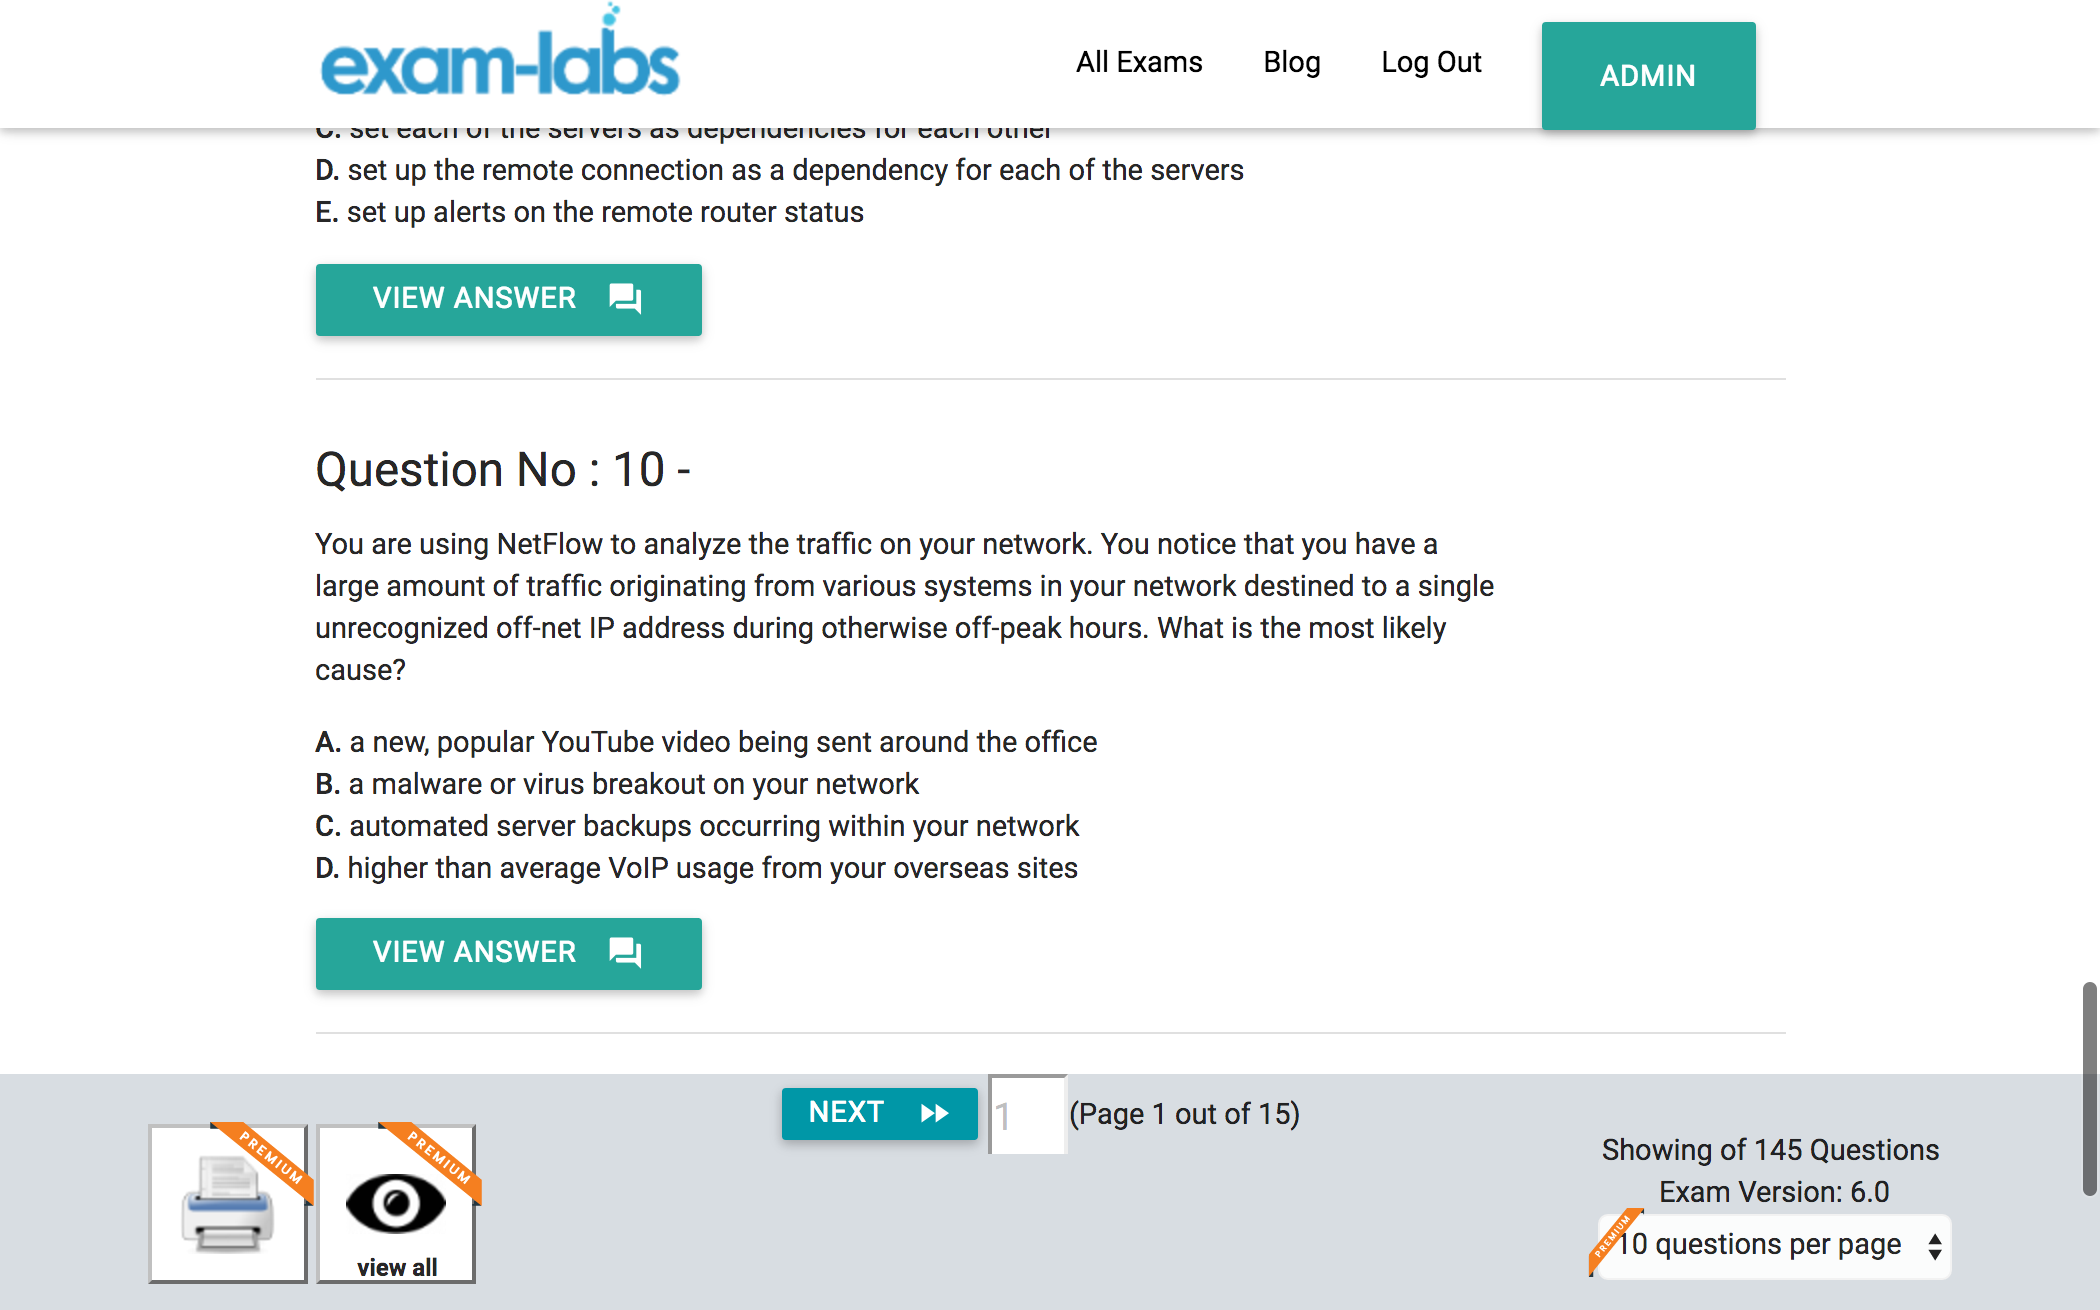 Scp 500 solarwinds practice exam questions 100 free exam labs scp 500practiceexam1 scp 500practiceexam2 scp 500practiceexam3 xflitez Image collections